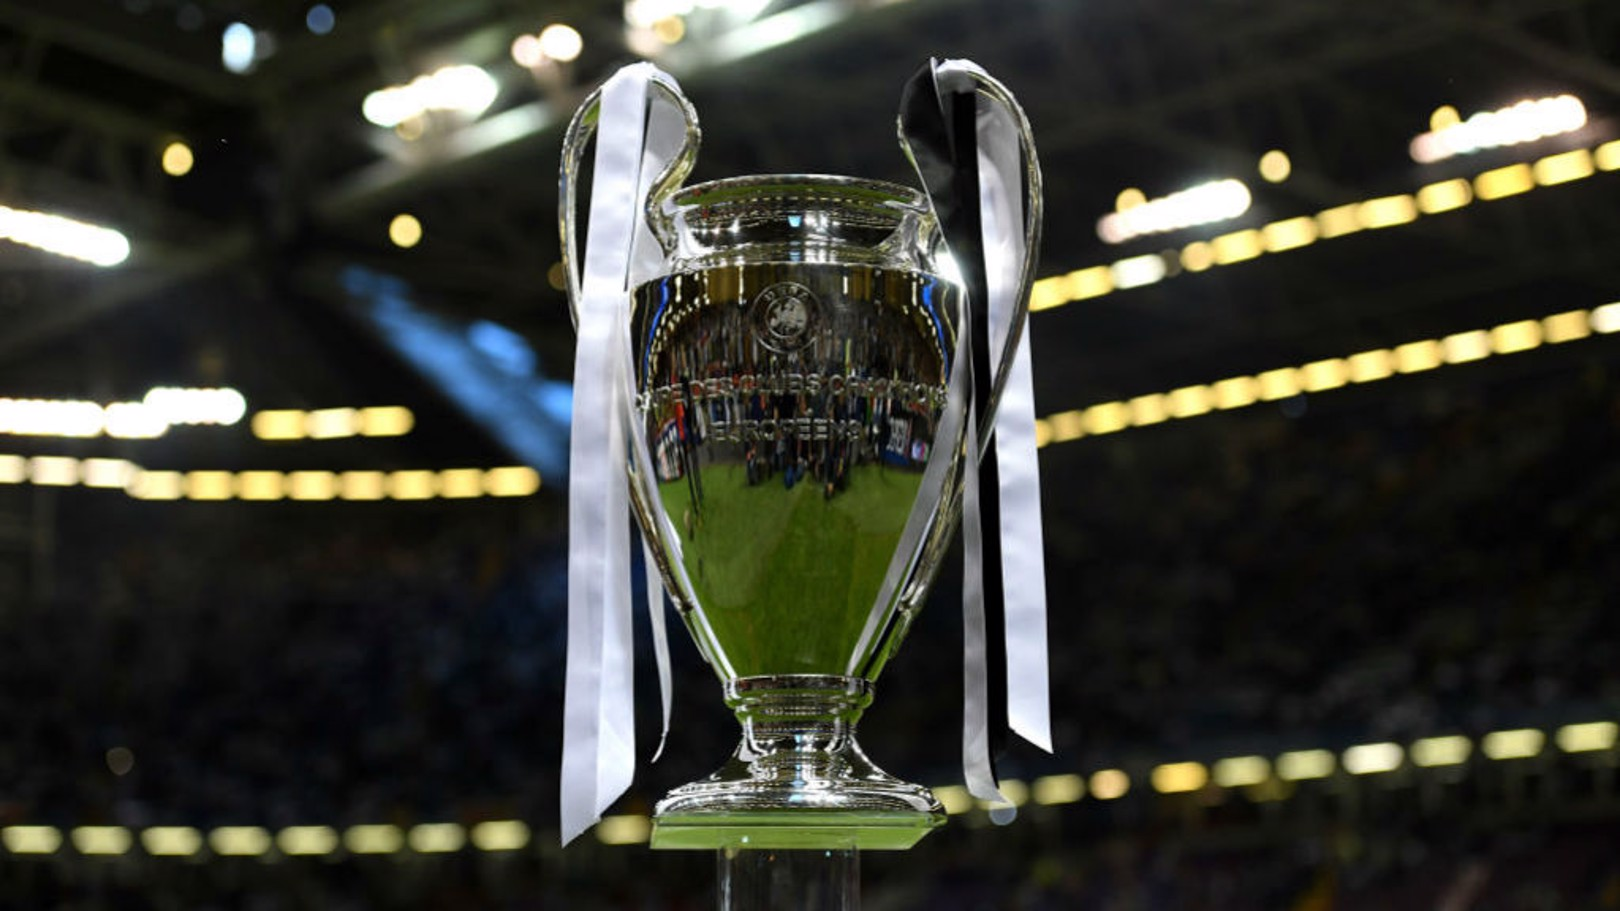 LAST 16: The draw for the knock-out phase of this season's Champions League will take place on Monday in Nyon.